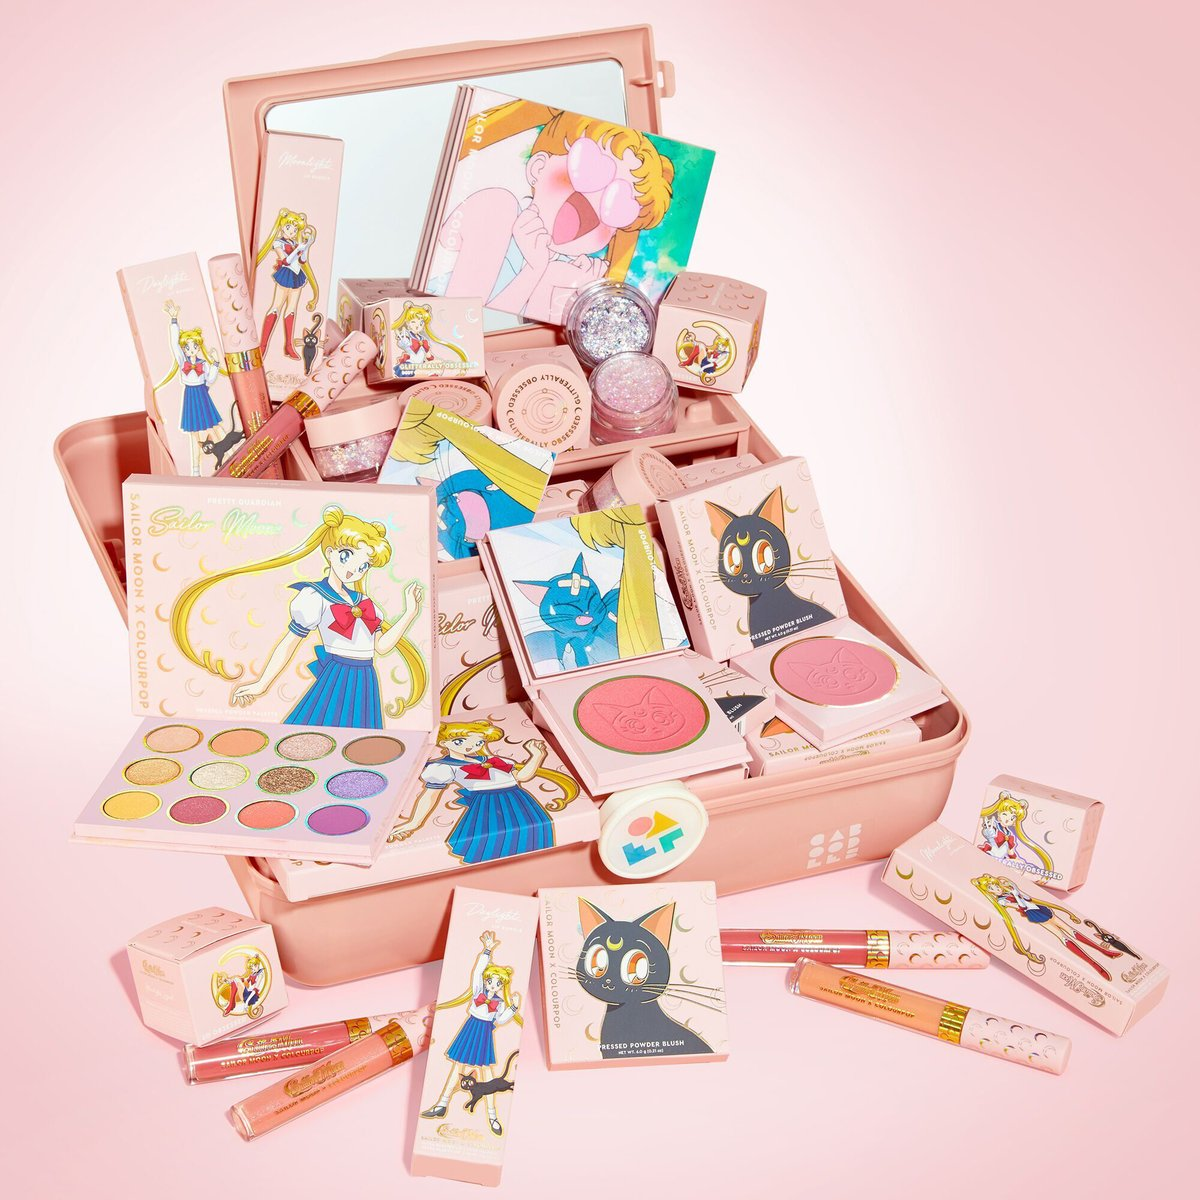 #GIVEAWAY🌙    Win the #SailorMoon X COLOURPOP COLLECTION before the RESTOCK! There will be 5 winners! Full collection restocking on JULY 30TH 10AM PST! #prettyguardiansailormoon ©N.T./PNP,T.A.  To enter:  🌙Reply w/ #SAILORMOONXCOLOURPOP  🌙RT & LIKE 🌙Follow us @ColourPopCo https://t.co/6XbP3M8ERX